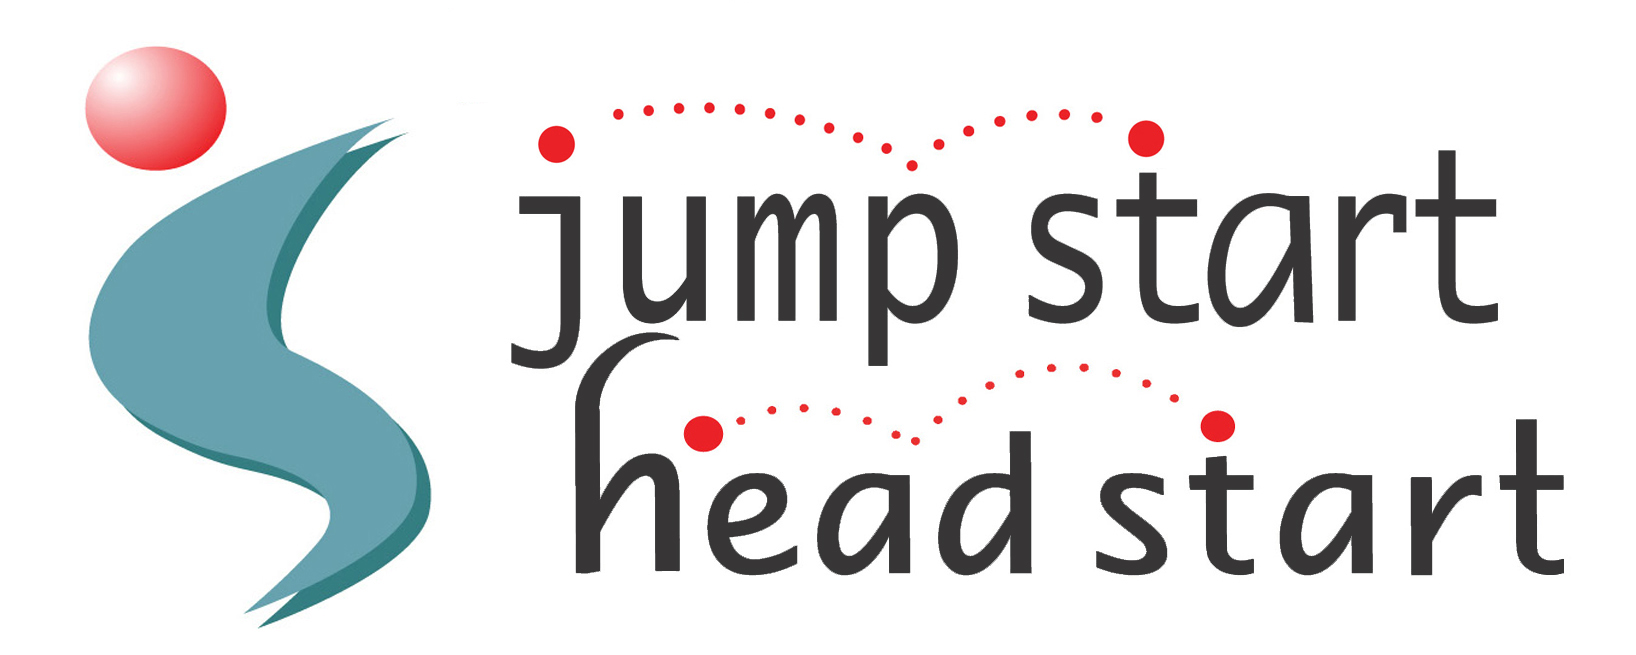 Teaching English and Living in Taiwan, Join Our Team @ Jump Start! image